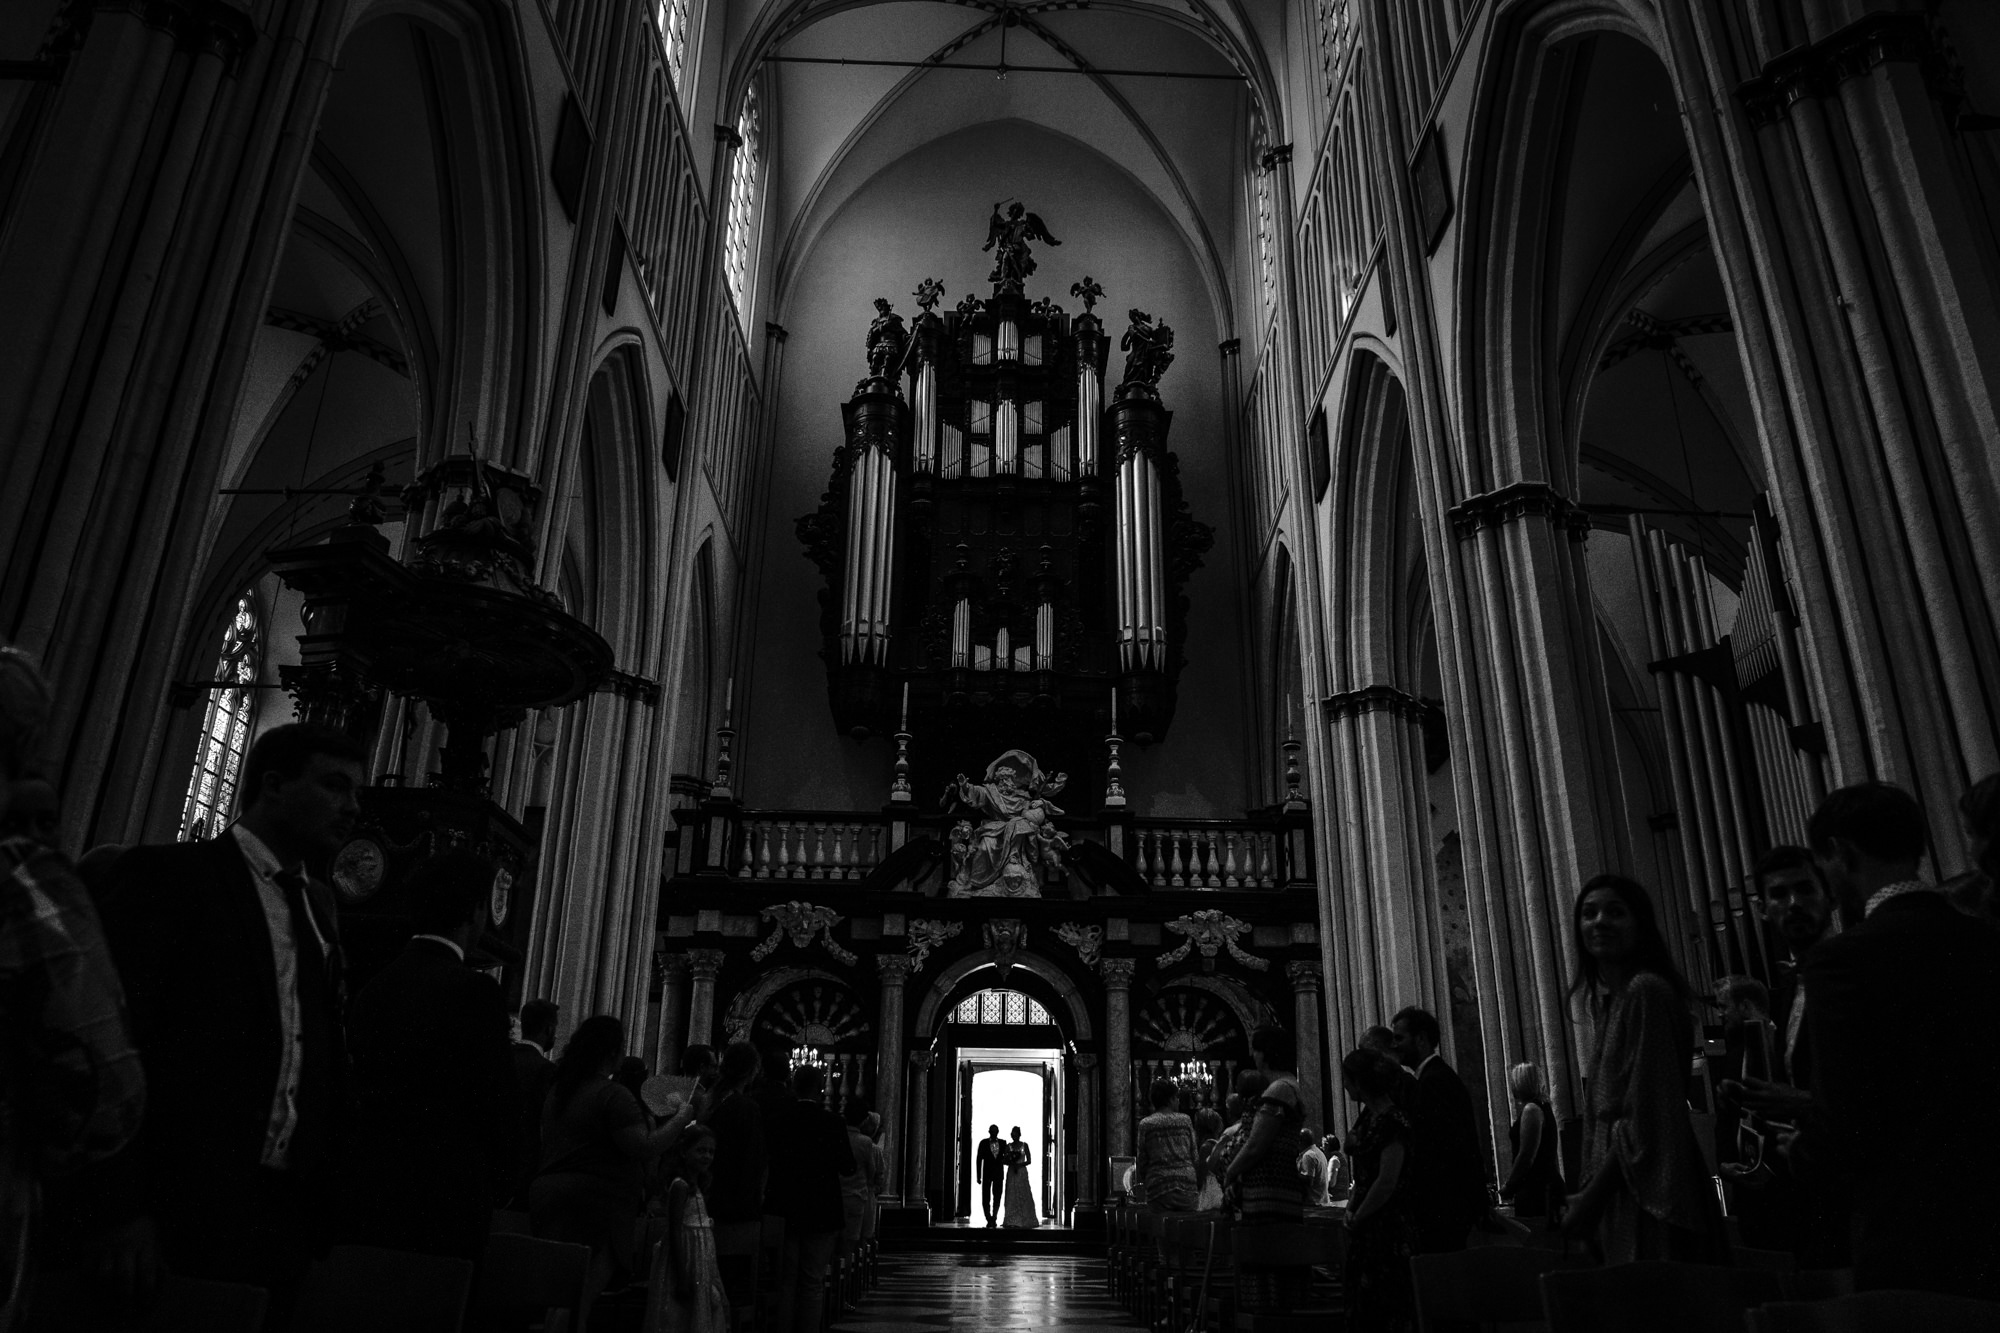 Silhouette of bride and father at cathedral doors, black and white photo by Yves Schepers, Belgium wedding photographers